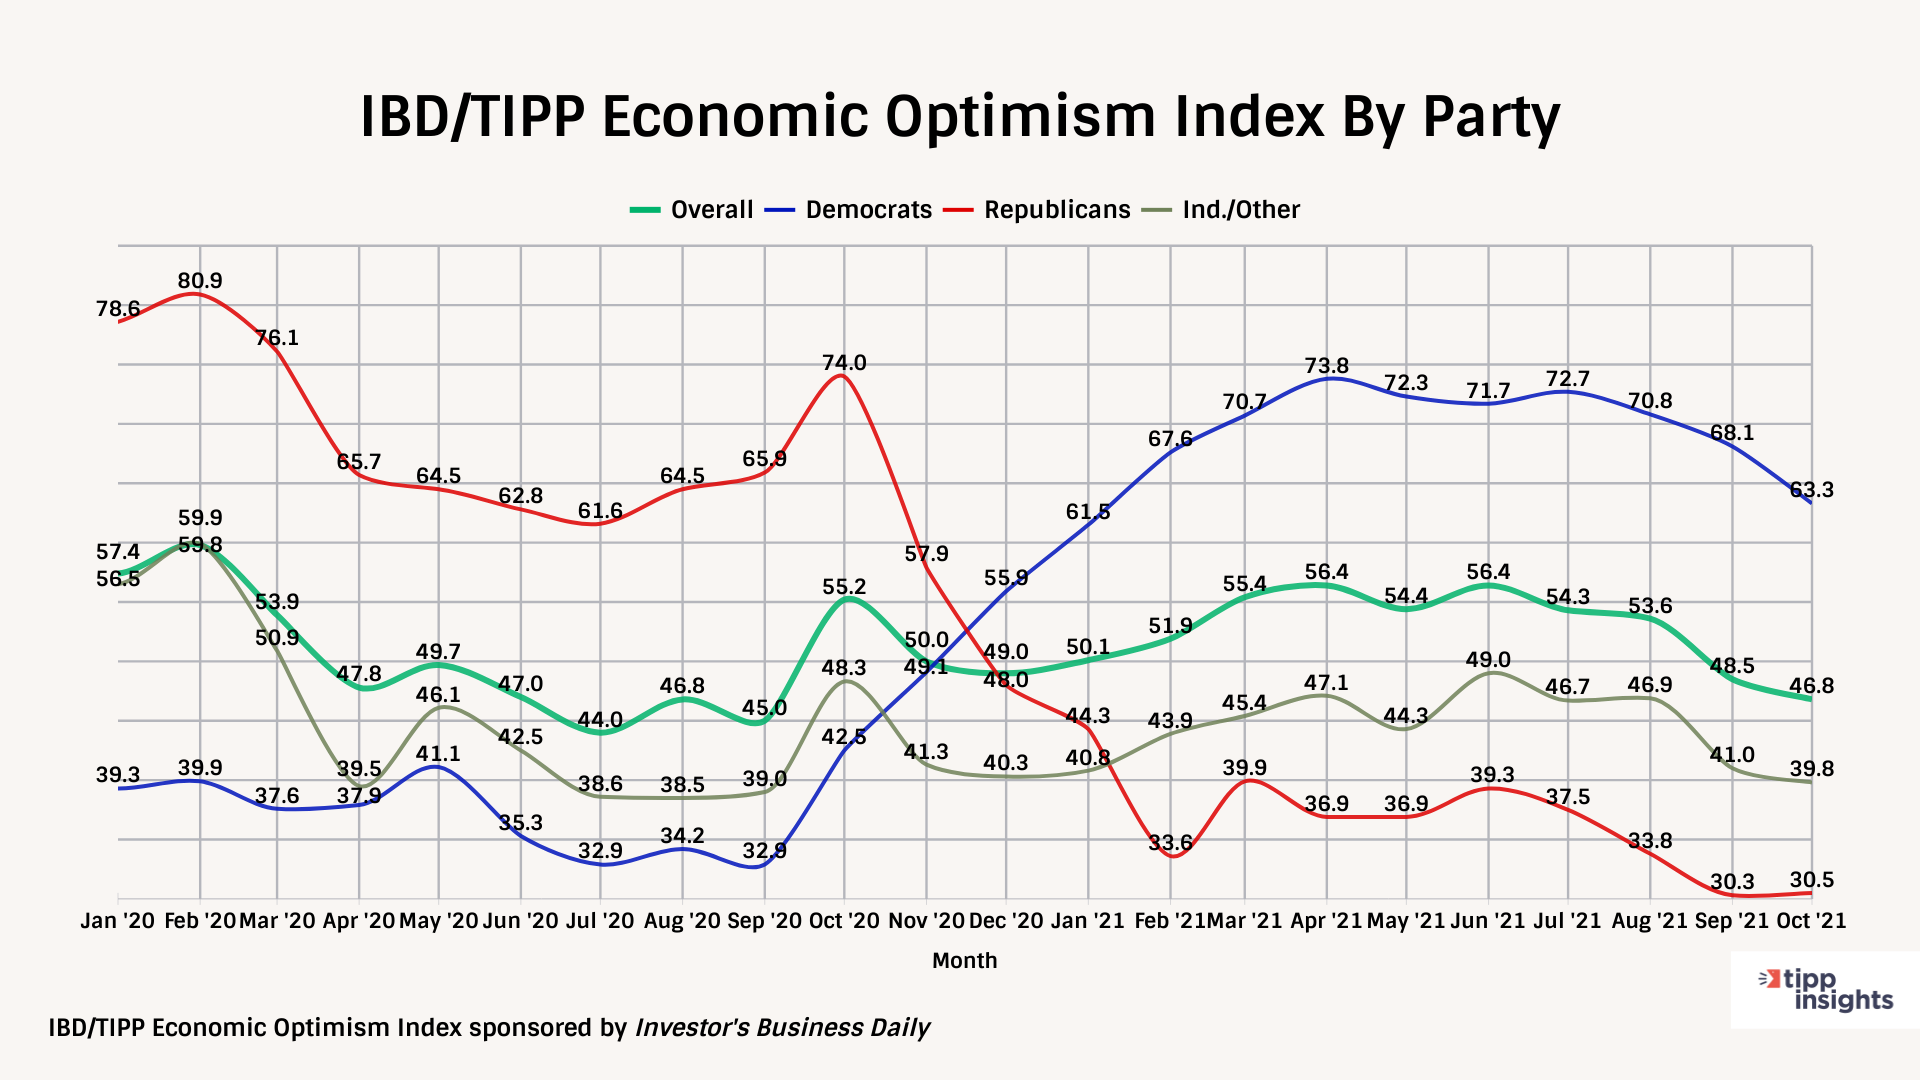 IBD/TIPP Economic Optimism Tracking Chart By Party